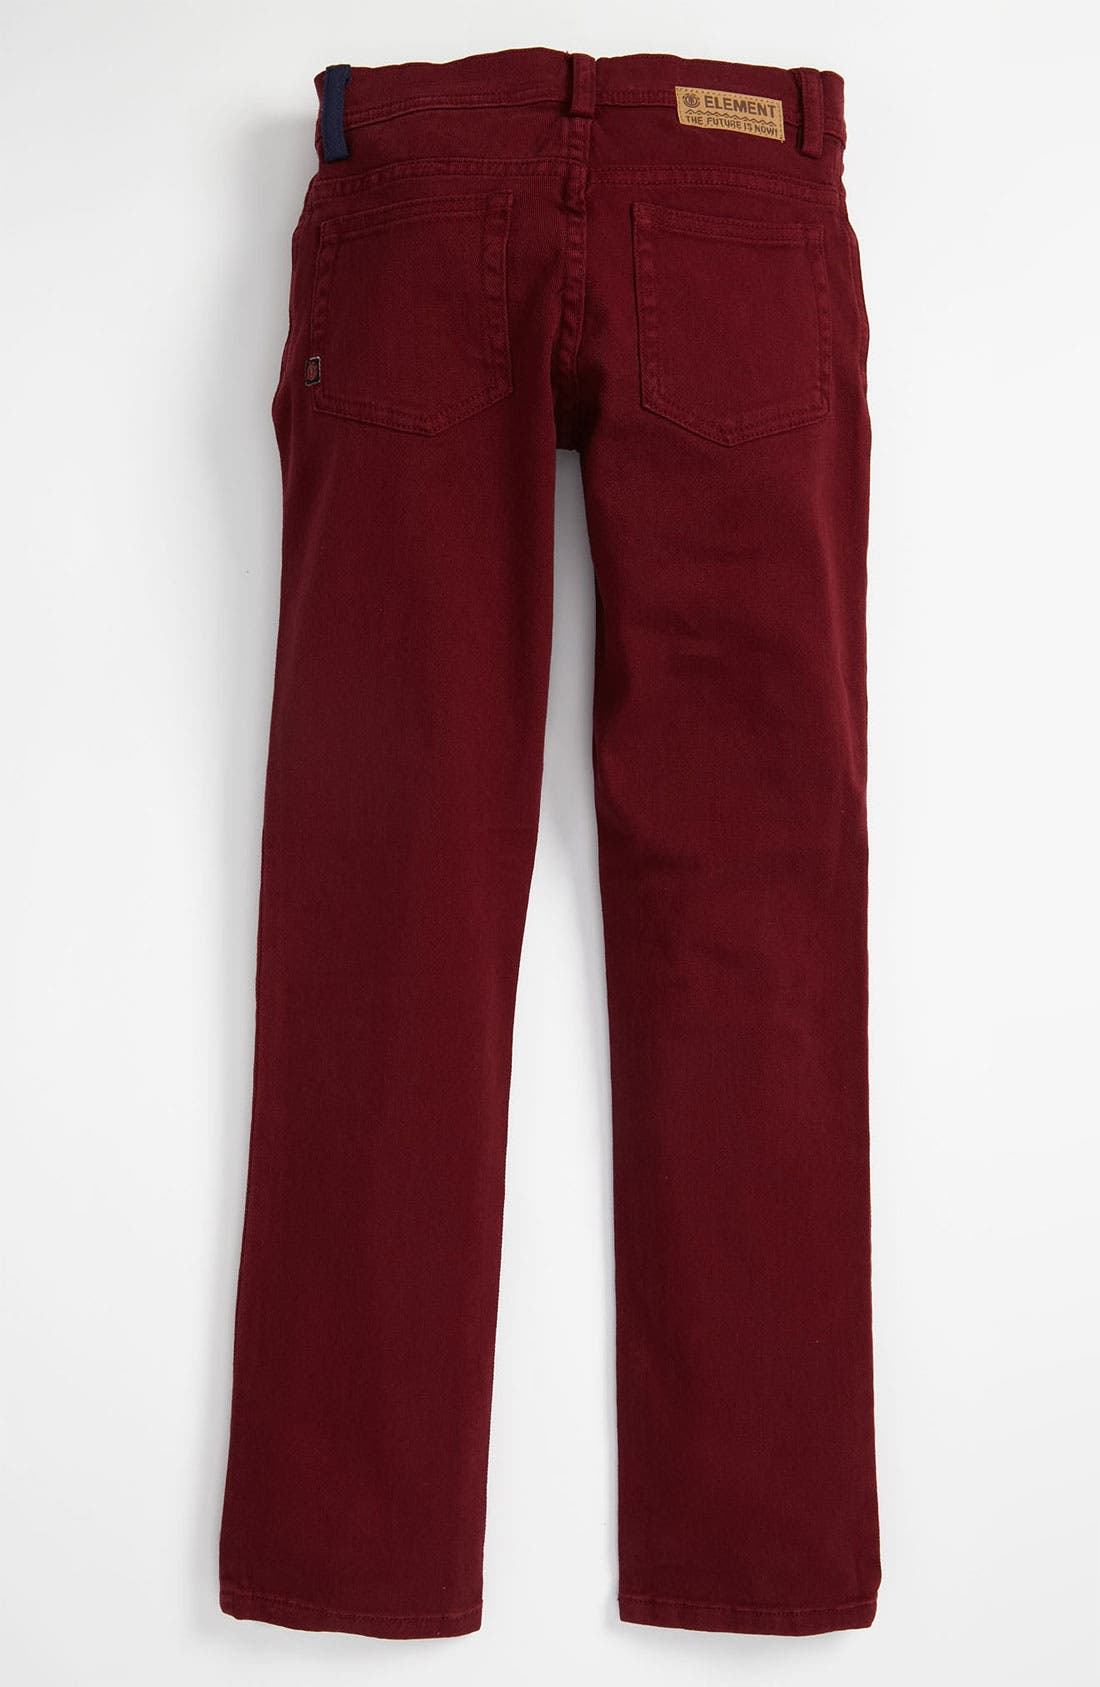 Alternate Image 1 Selected - Element 'Crosstown' Jeans (Big Boys)